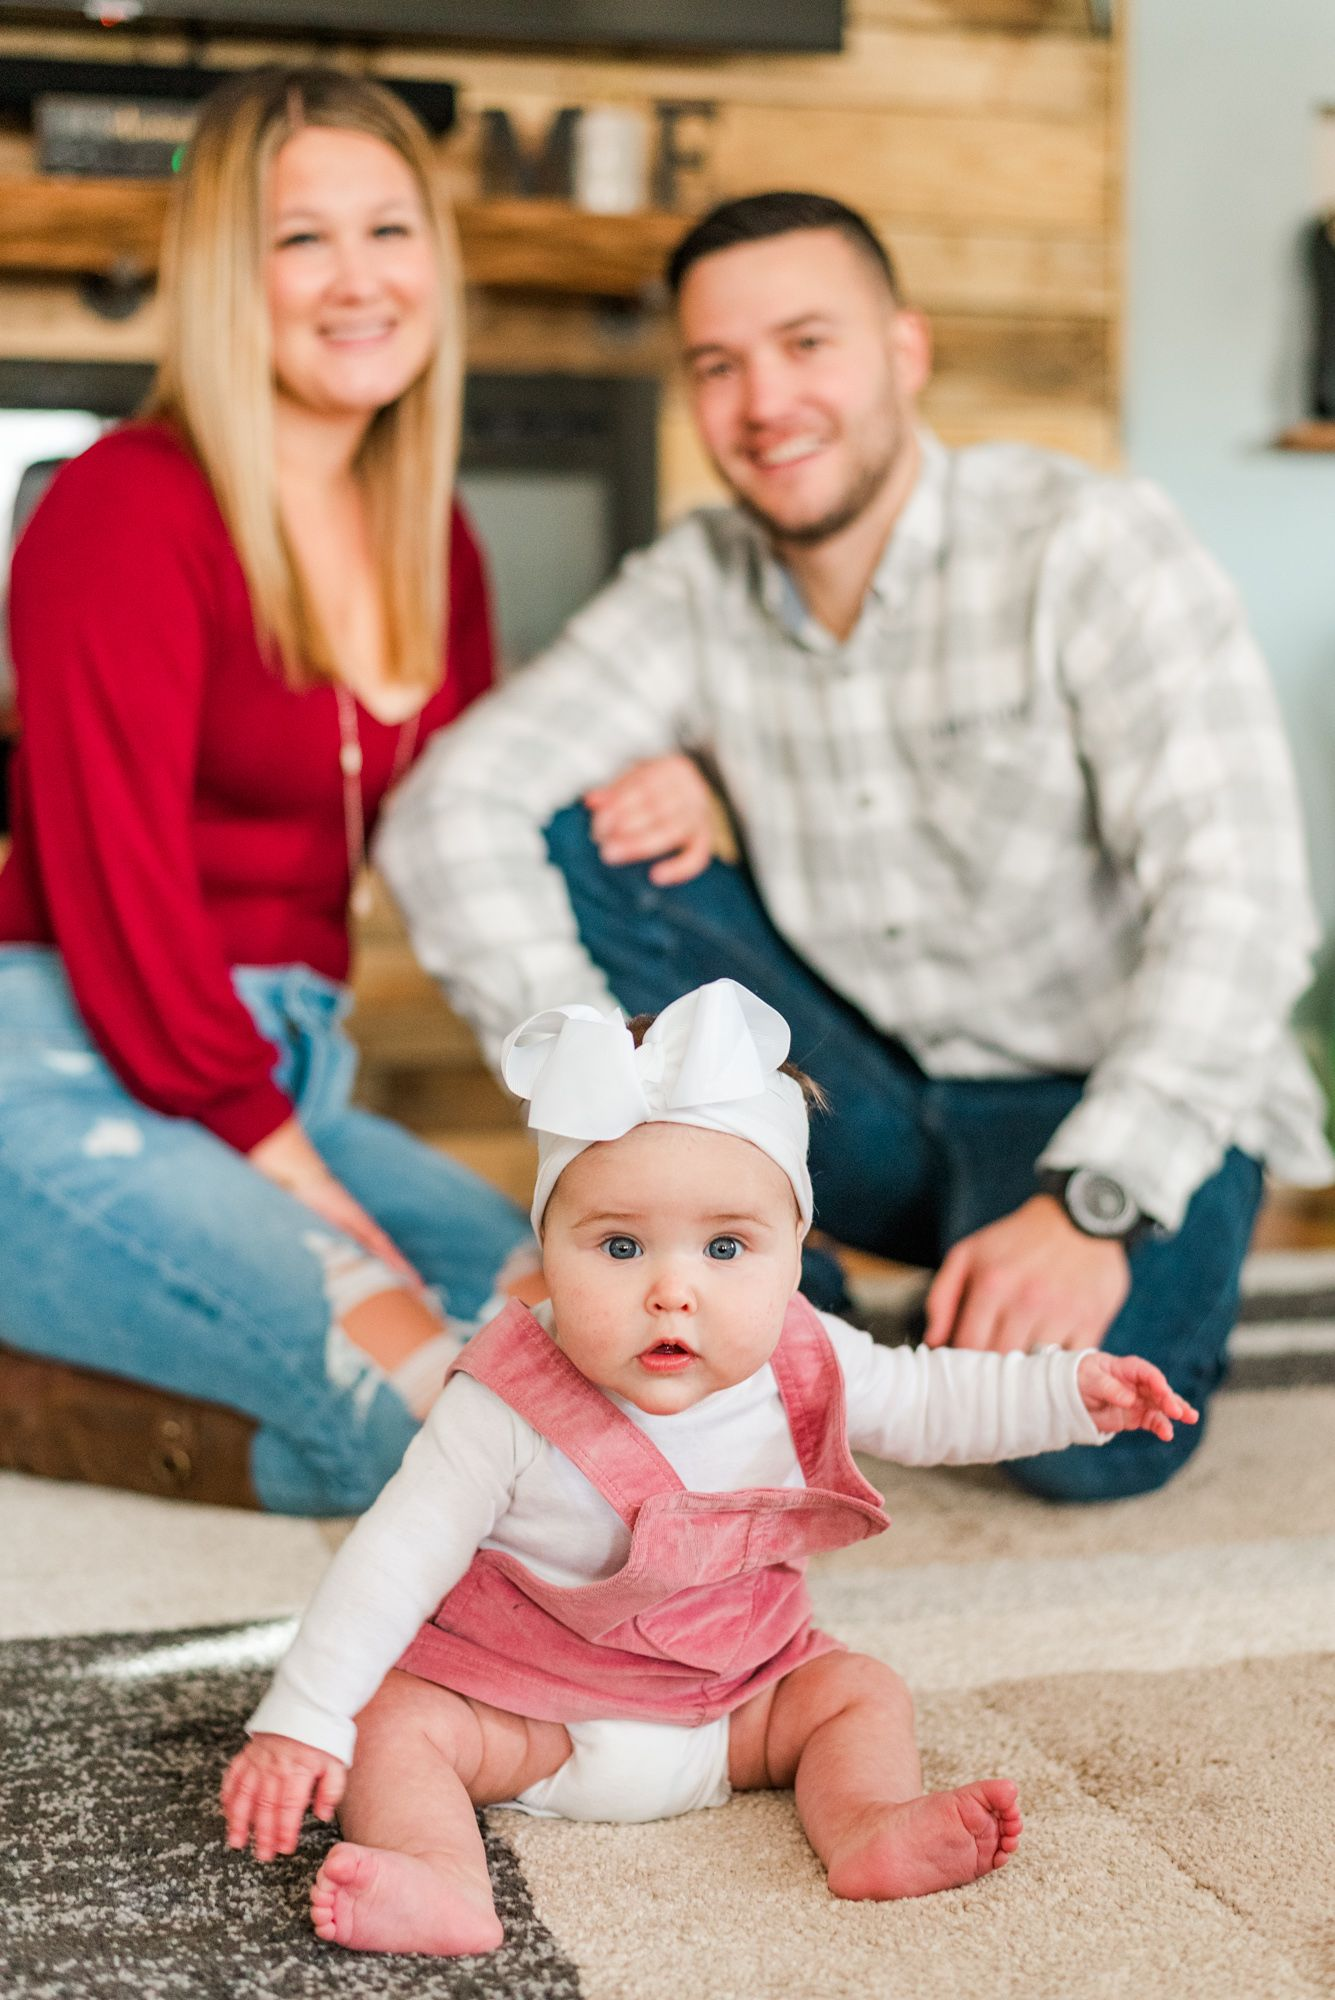 Lifestyle family photoshoot in the home with mom and dad and 6 month old baby wearing bow in Gibsonia, Pennsylvania